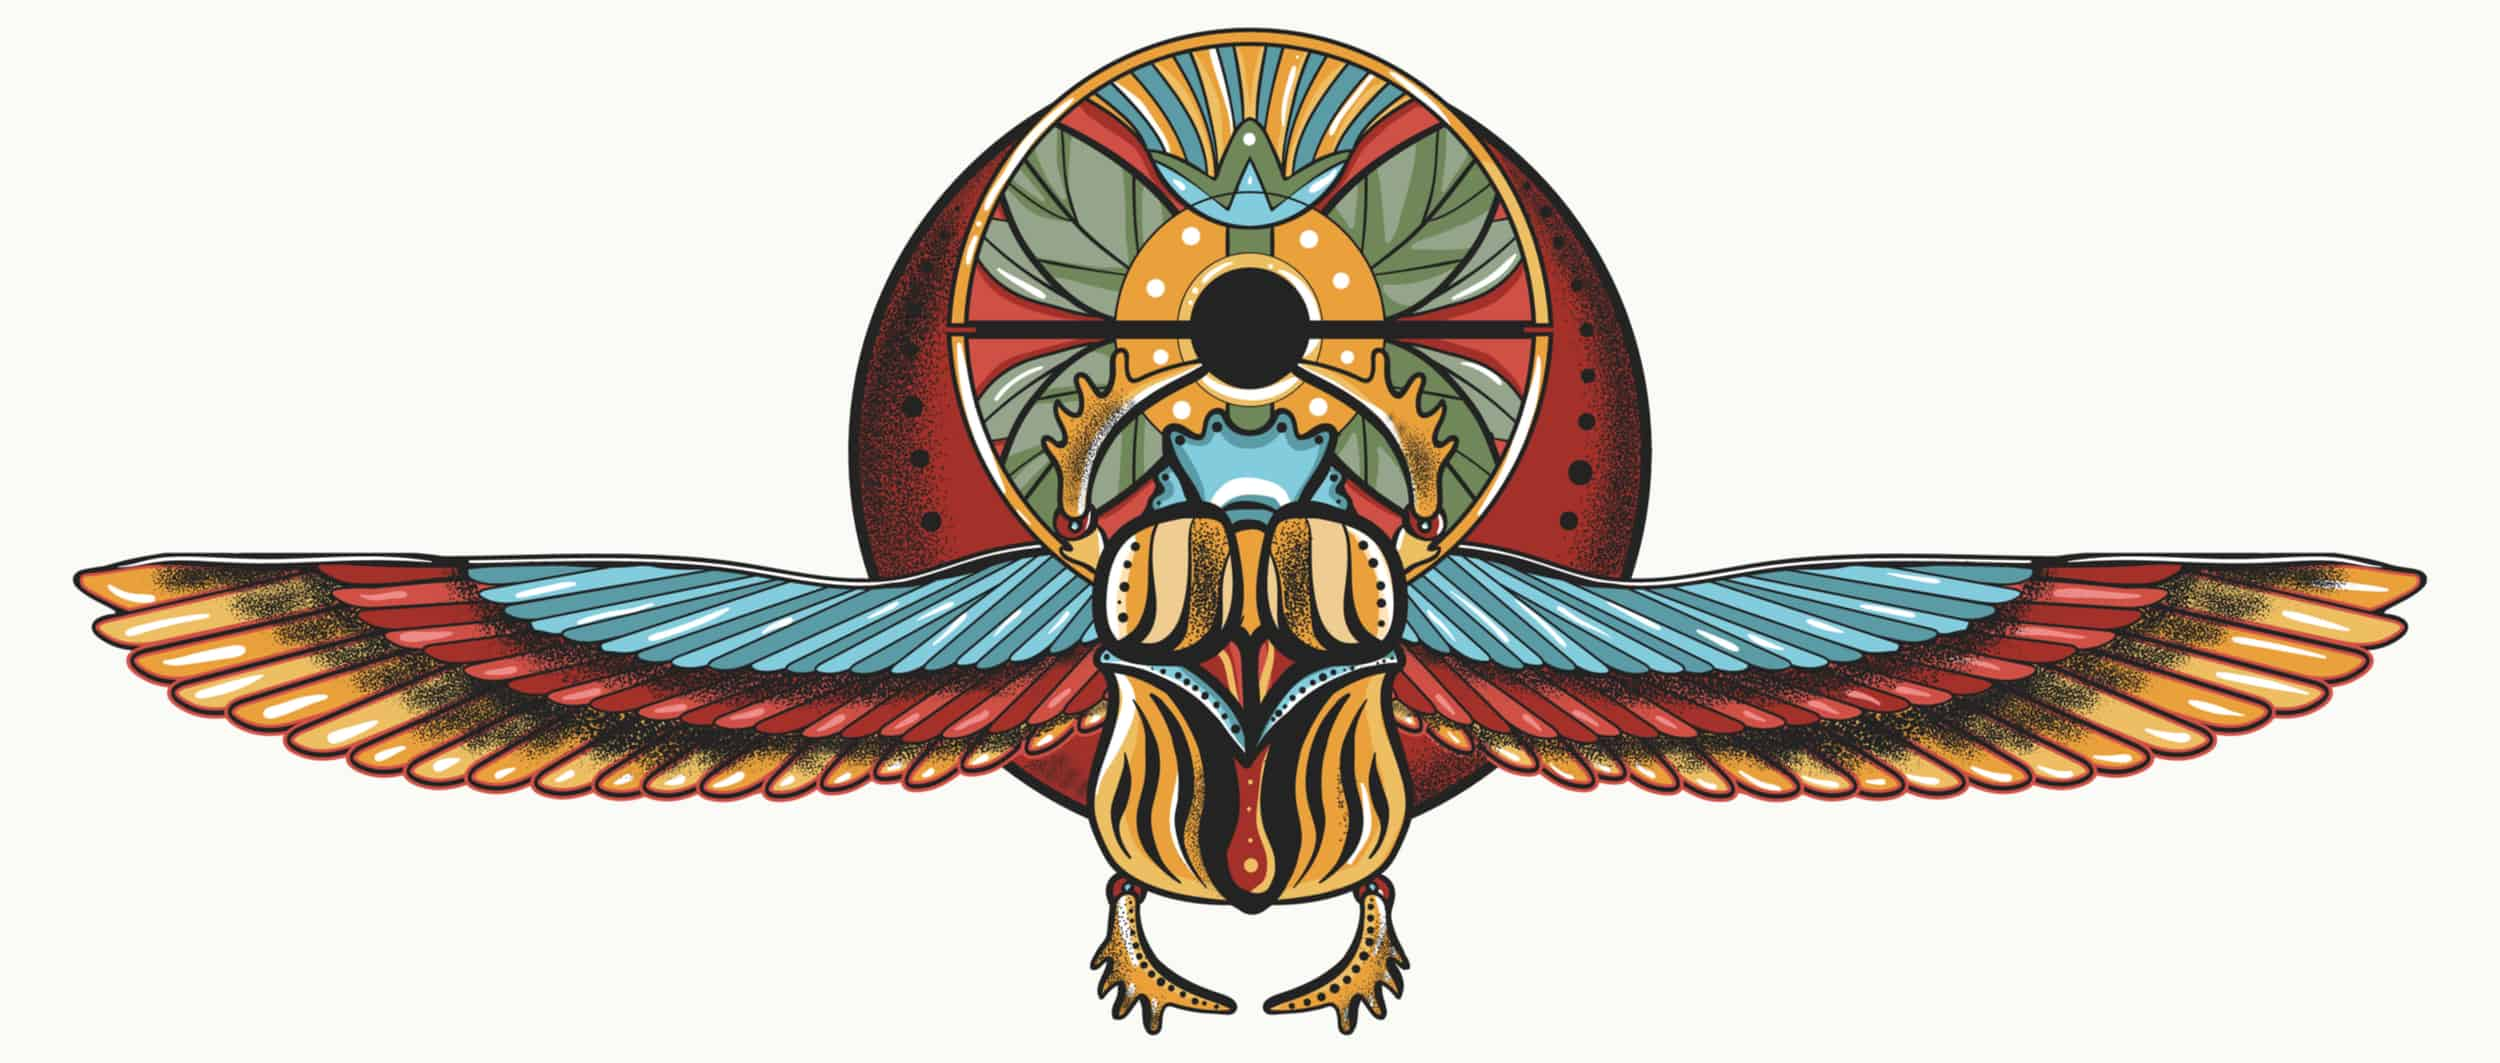 Scarab Beetle with Imaginary Wings, One of the Most Important Symbols of Rebirth, Renewal and Resurrection